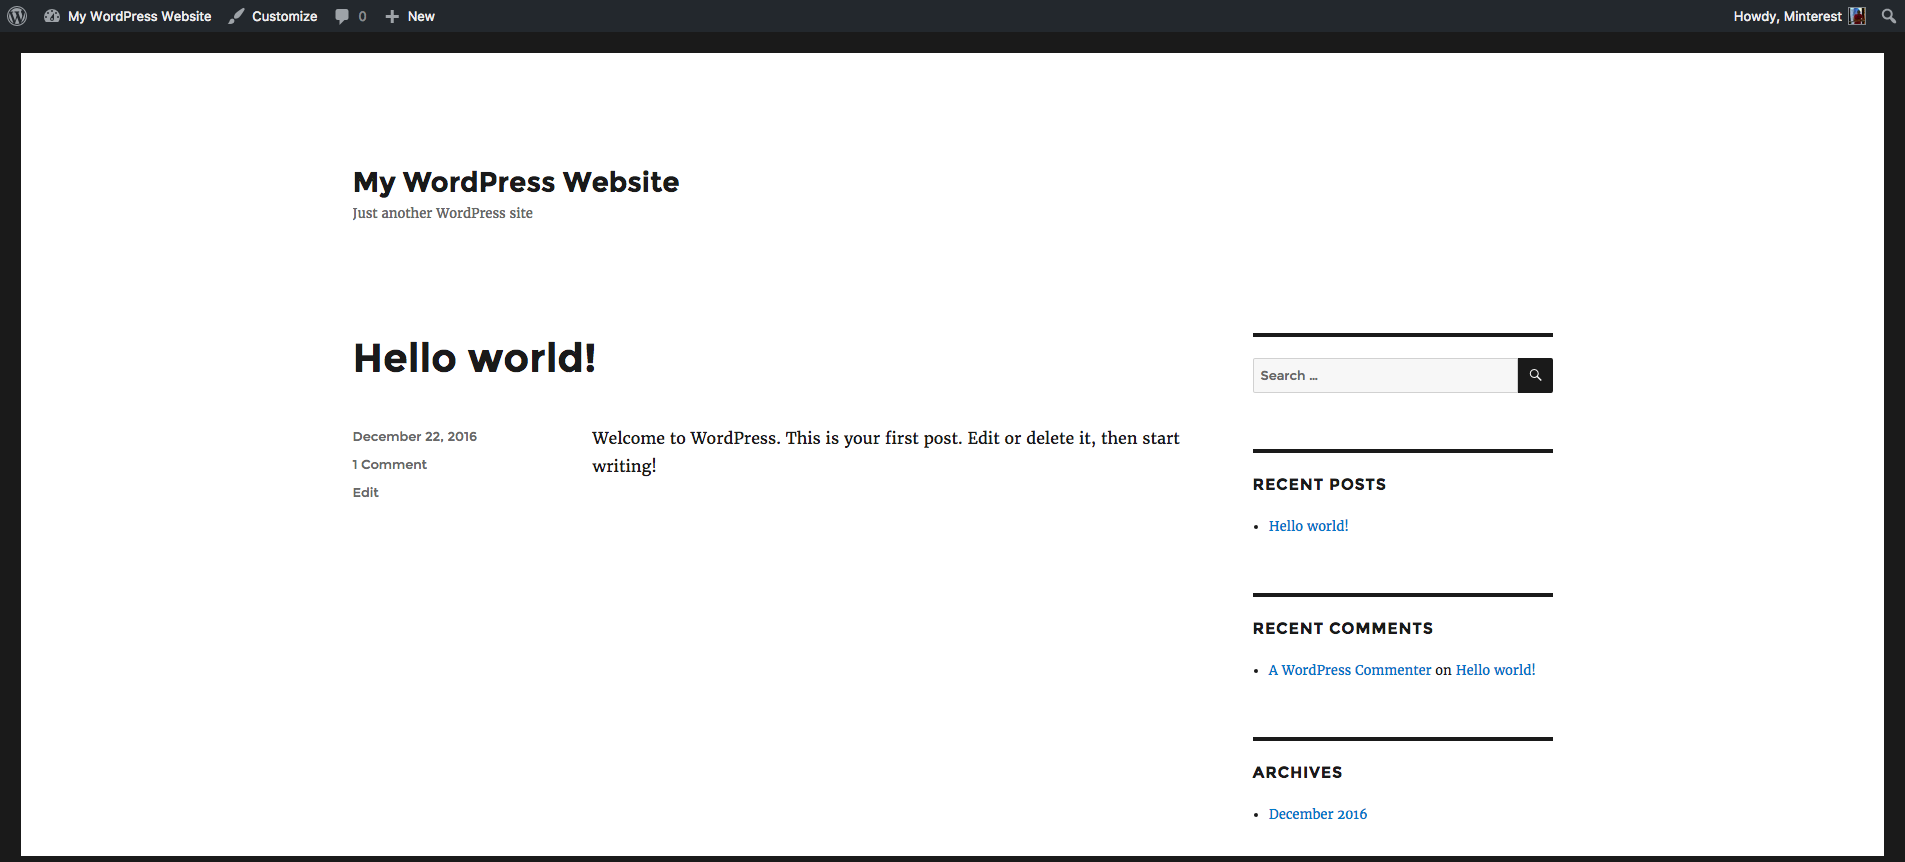 Just another WordPress site